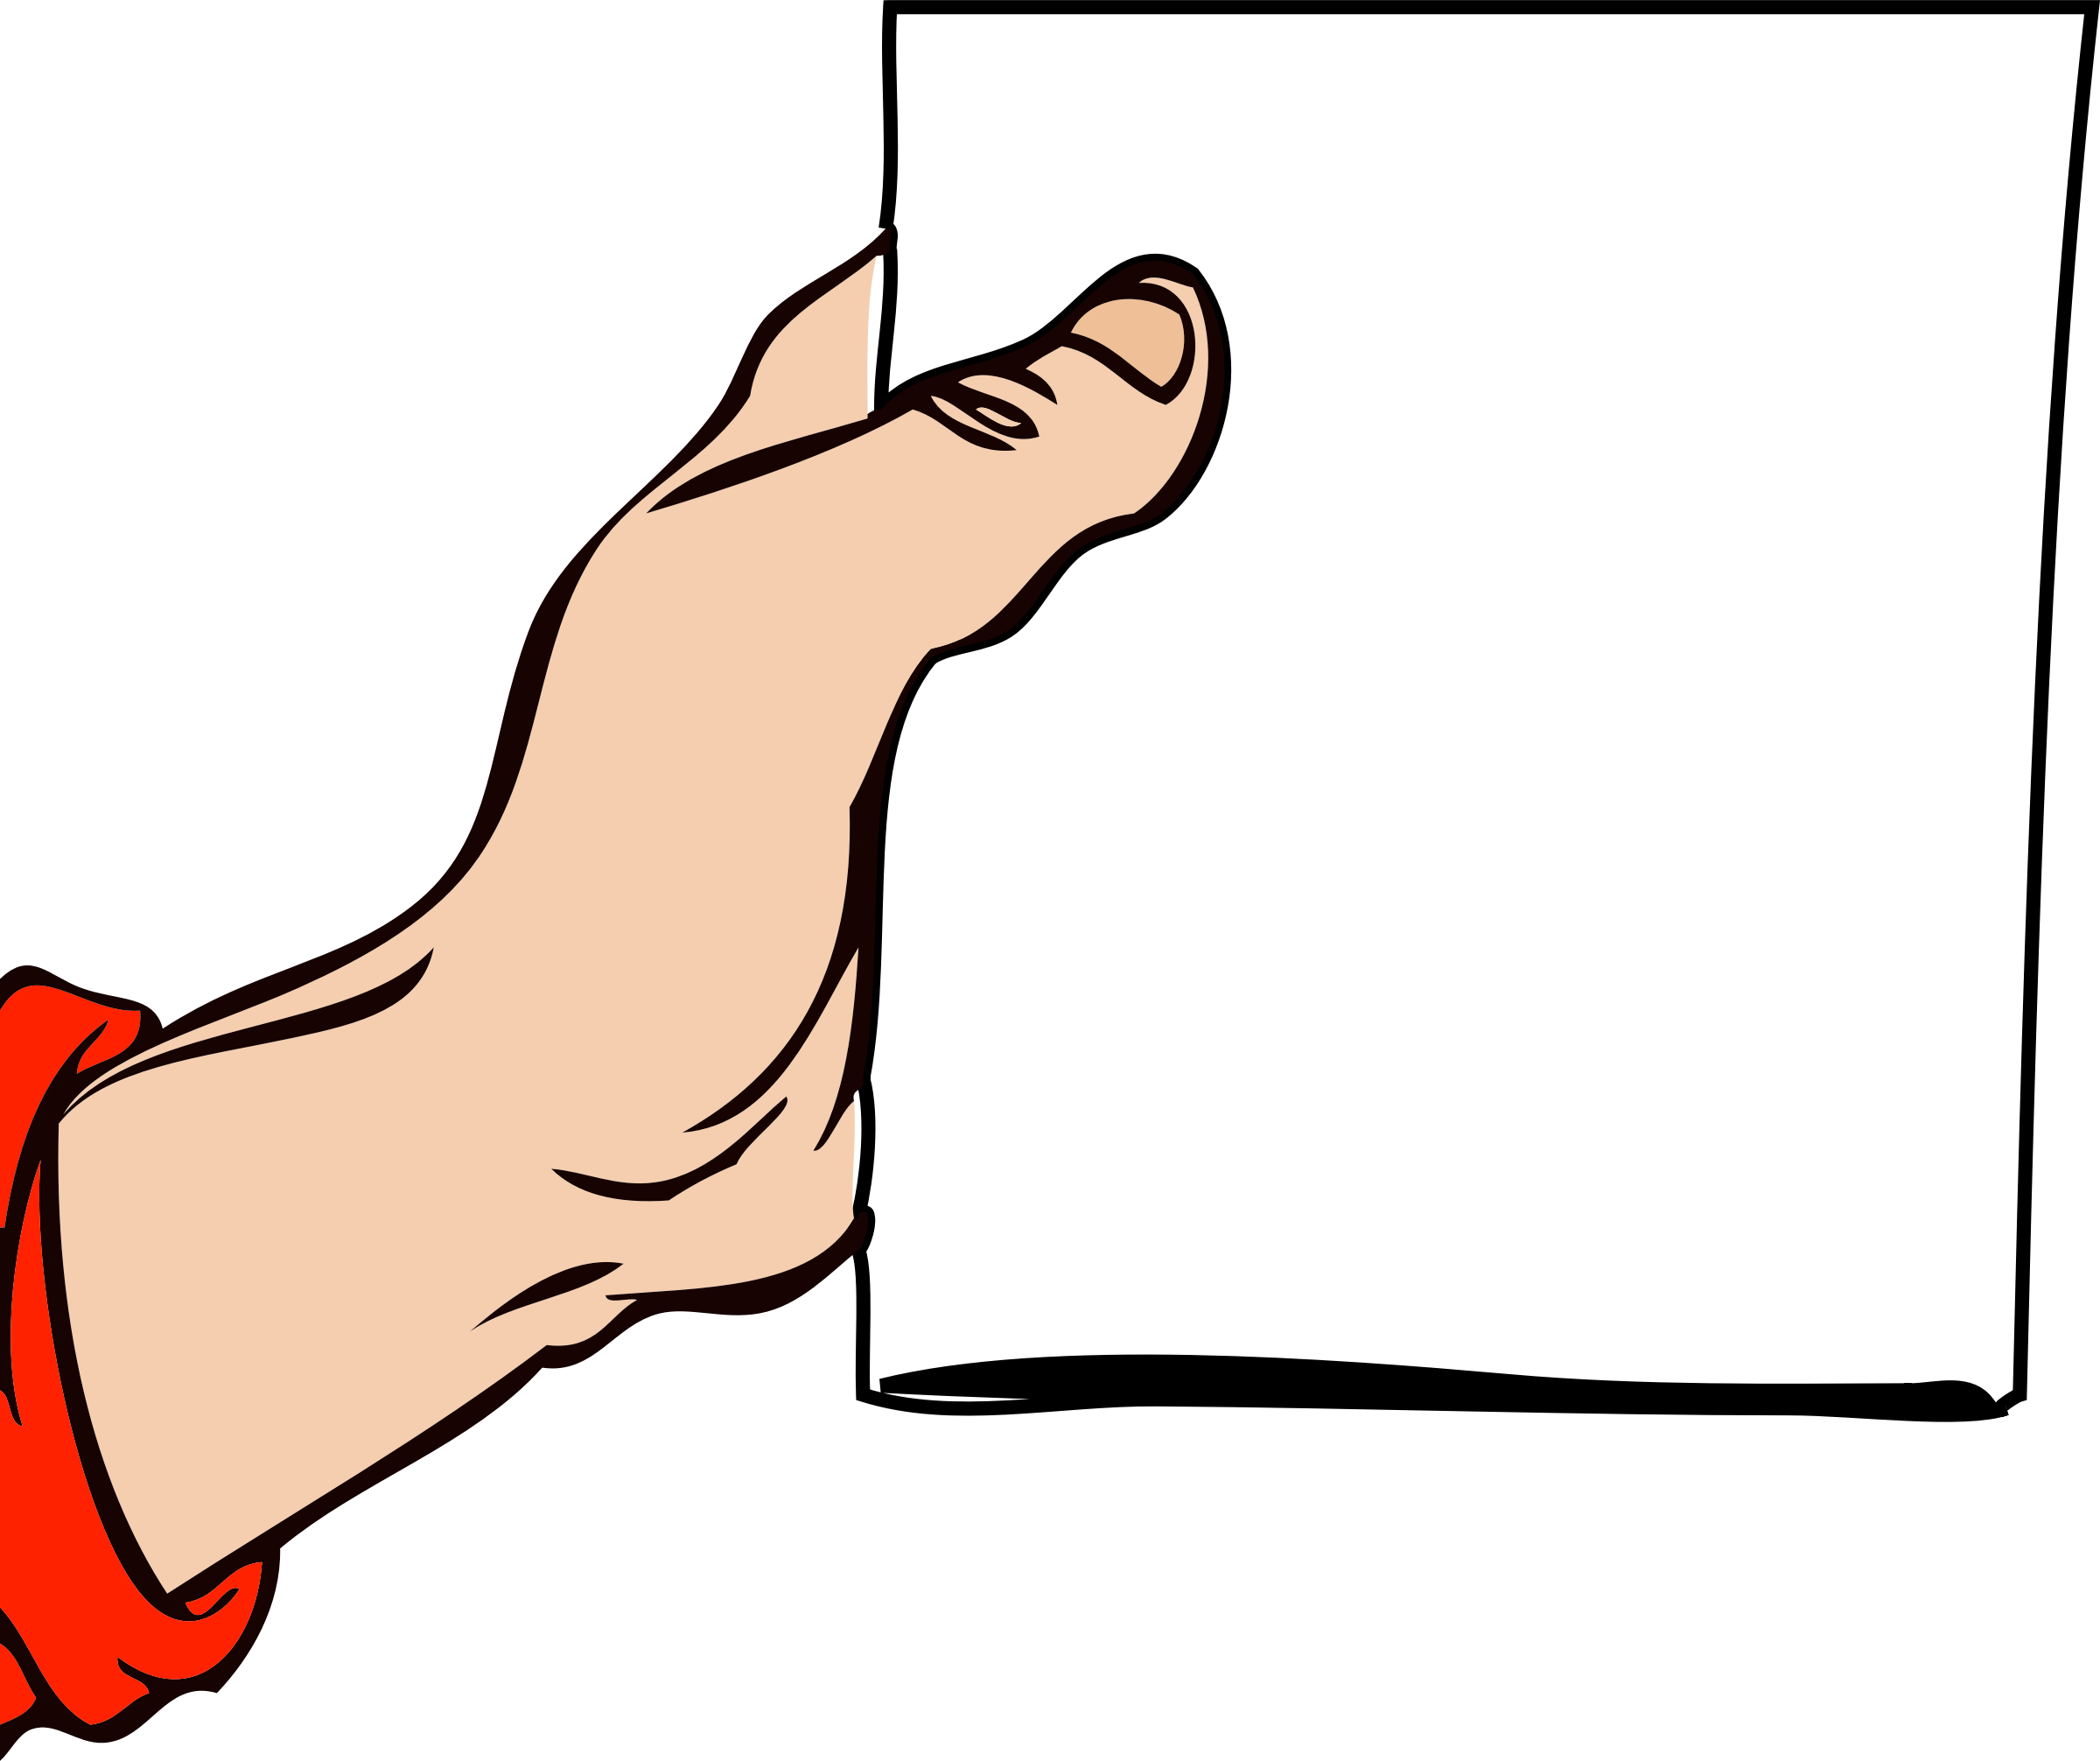 https://openclipart.org/image/2400px/svg_to_png/742/johnny-automatic-hand-holding-brochure.png